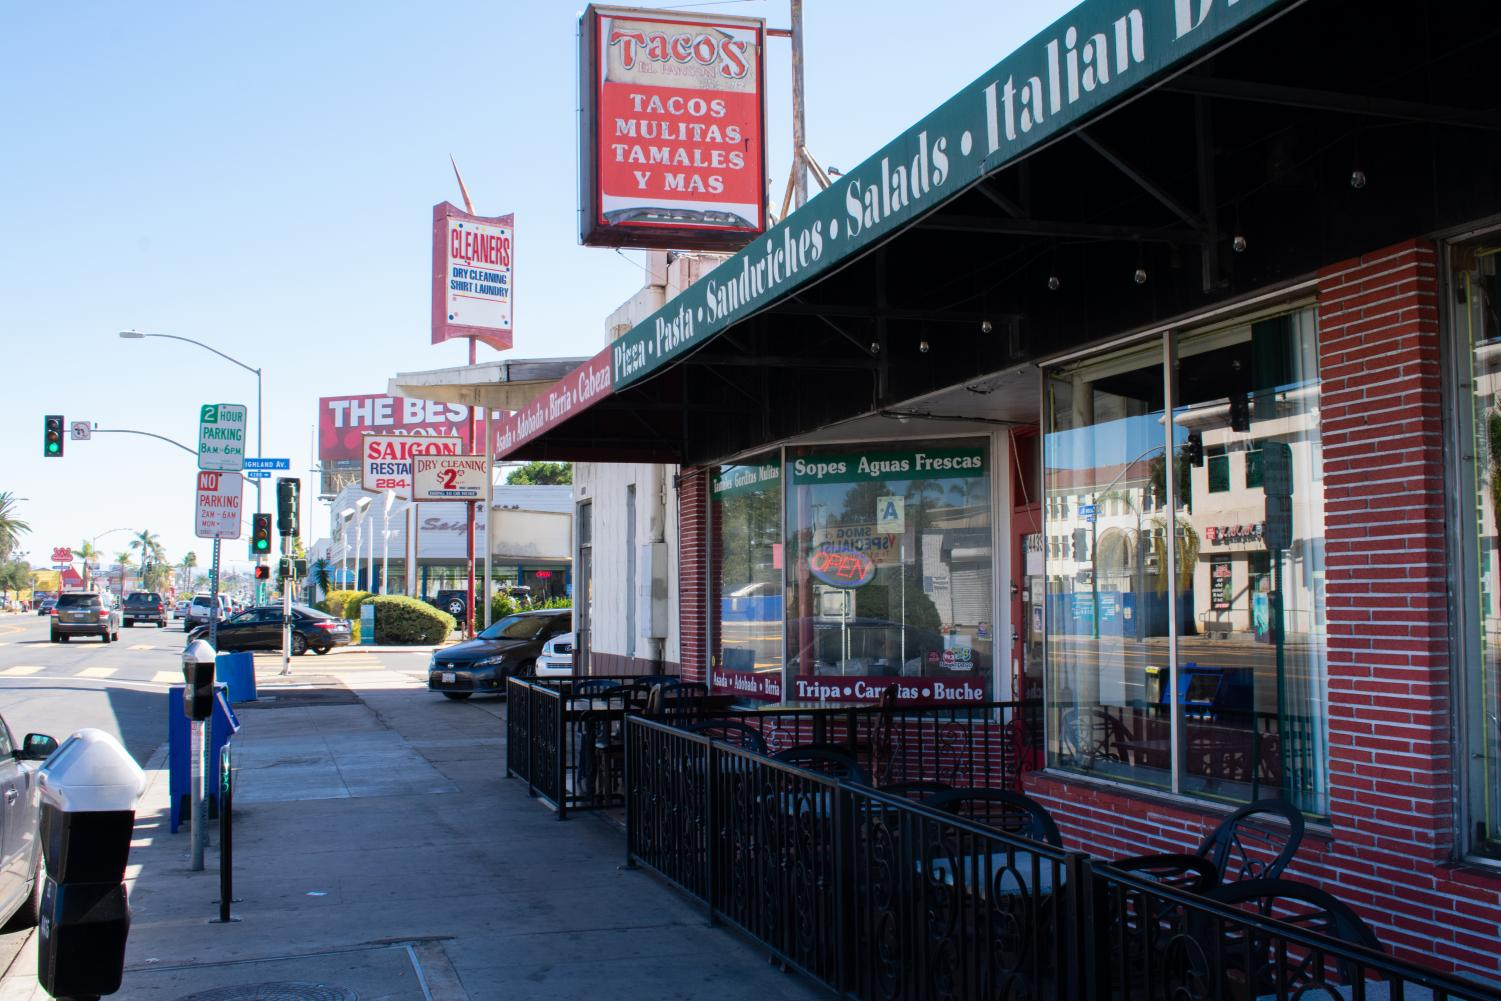 Tacos El Panson is located in the diverse neighborhood of City Heights.